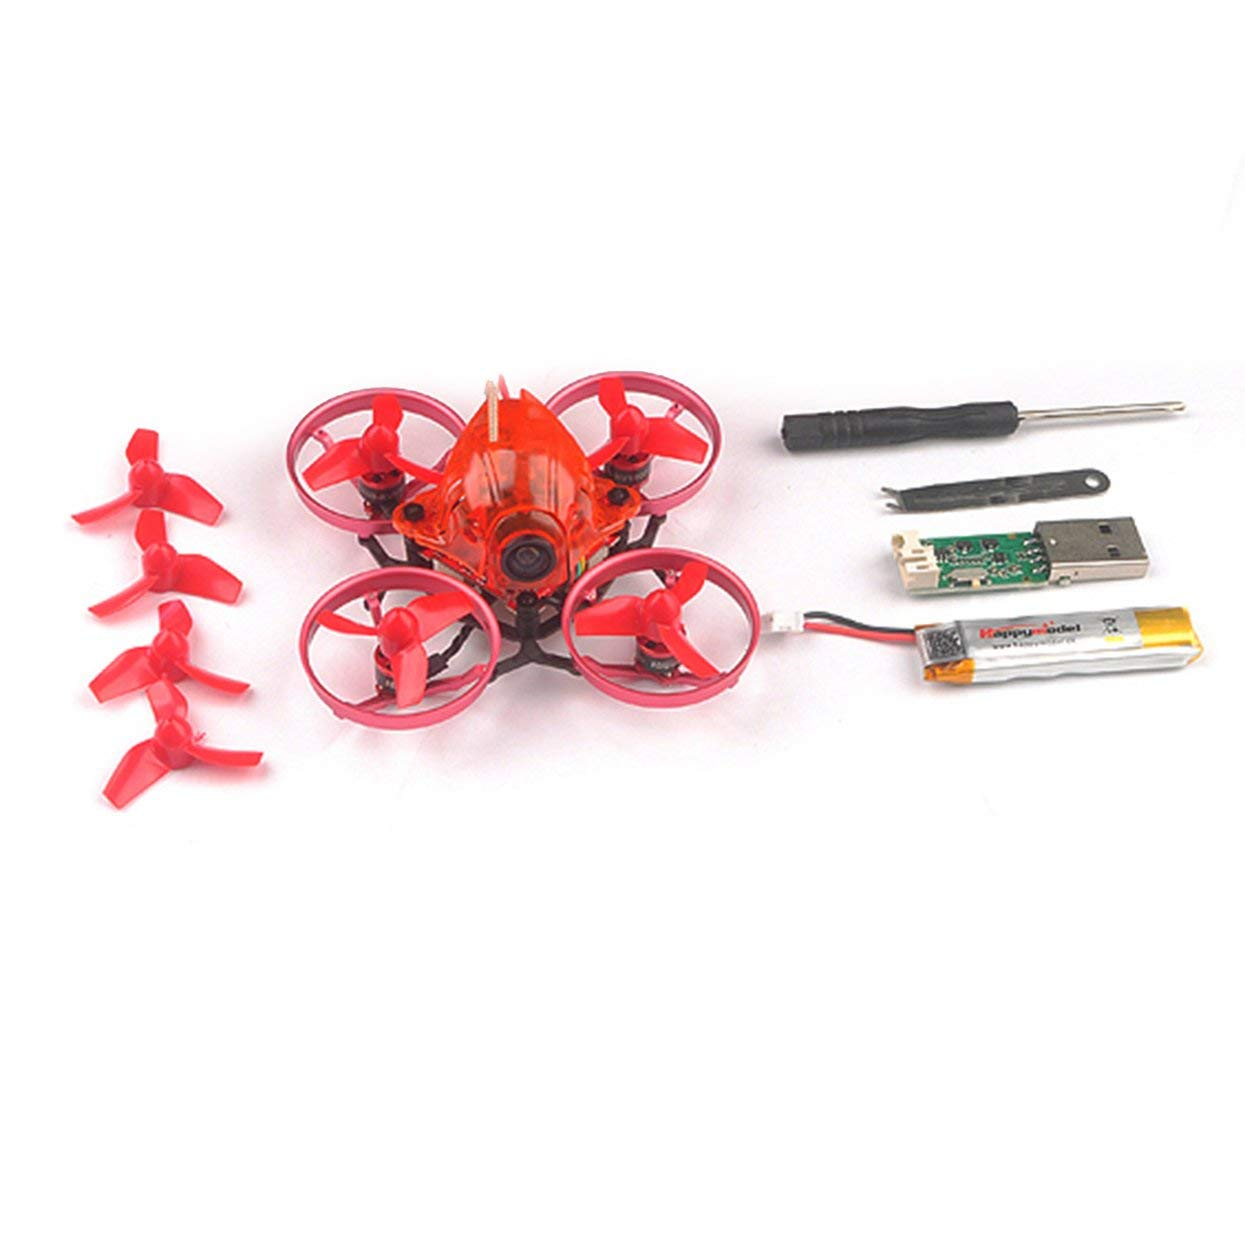 Tellaboull FOR Happymodel Snapper6 65mm Micro 1S Brushless FPV Racing RC Drohne Quadcopter mit F3 OSD BLHeli_S 5A ESC BNF FOR